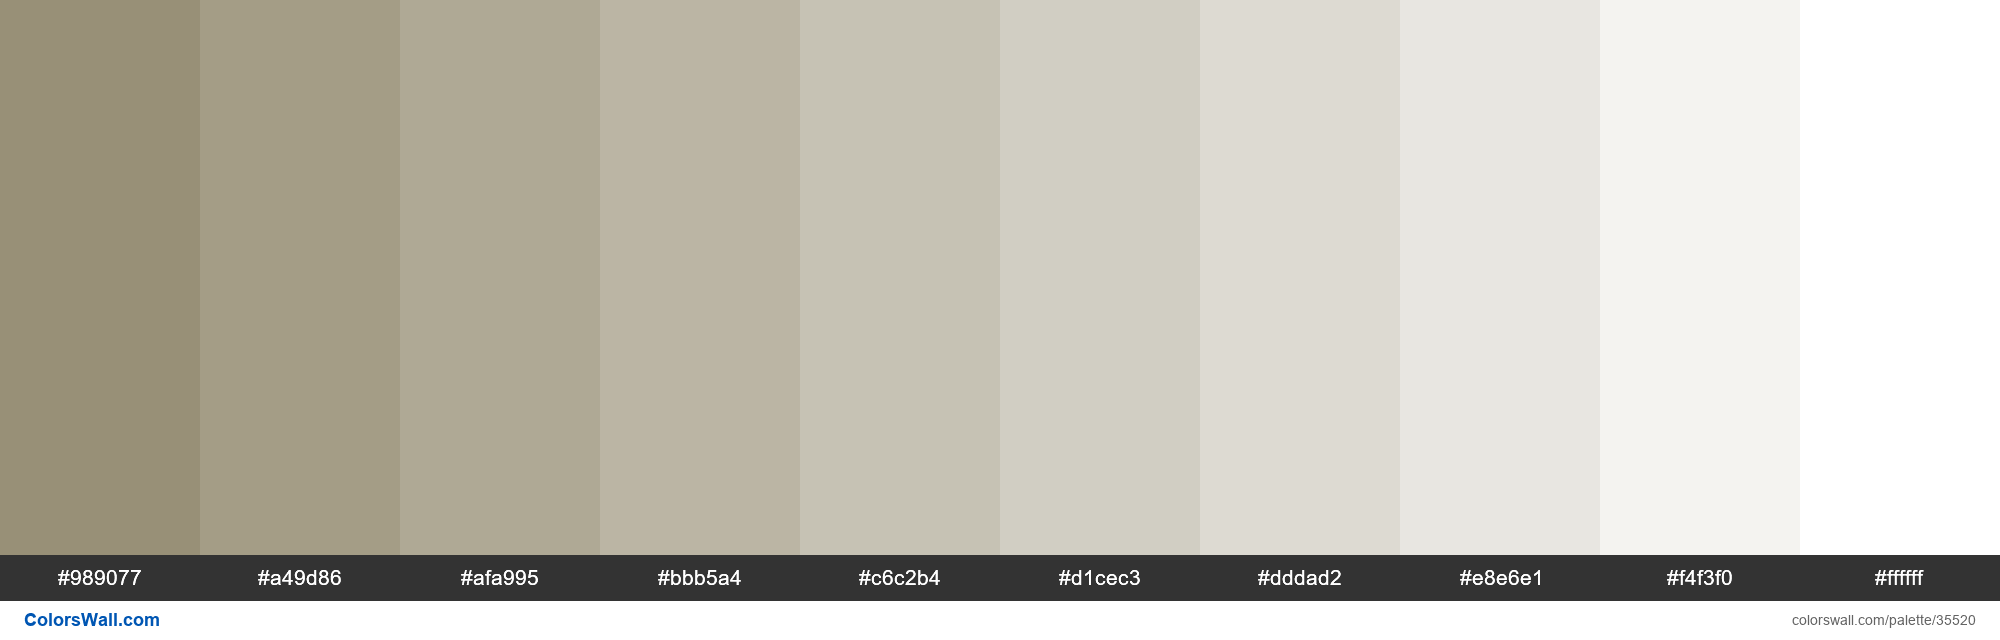 Tints XKCD Color brown grey #8d8468 hex - #35520